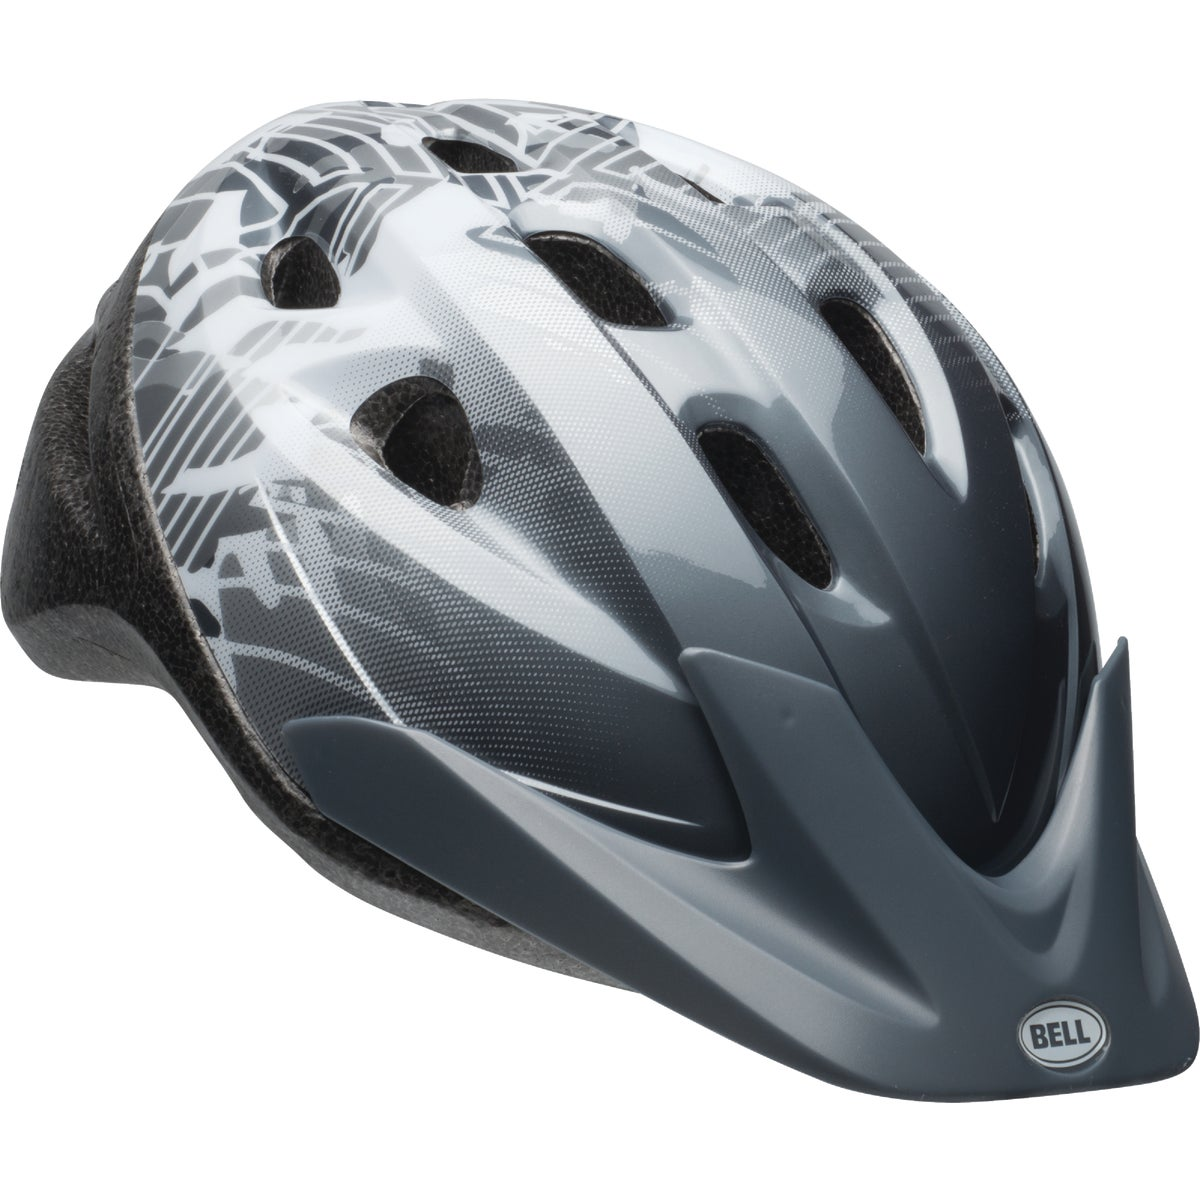 CHILD'S TRU FIT HELMET - 7049685 by Bell Sports